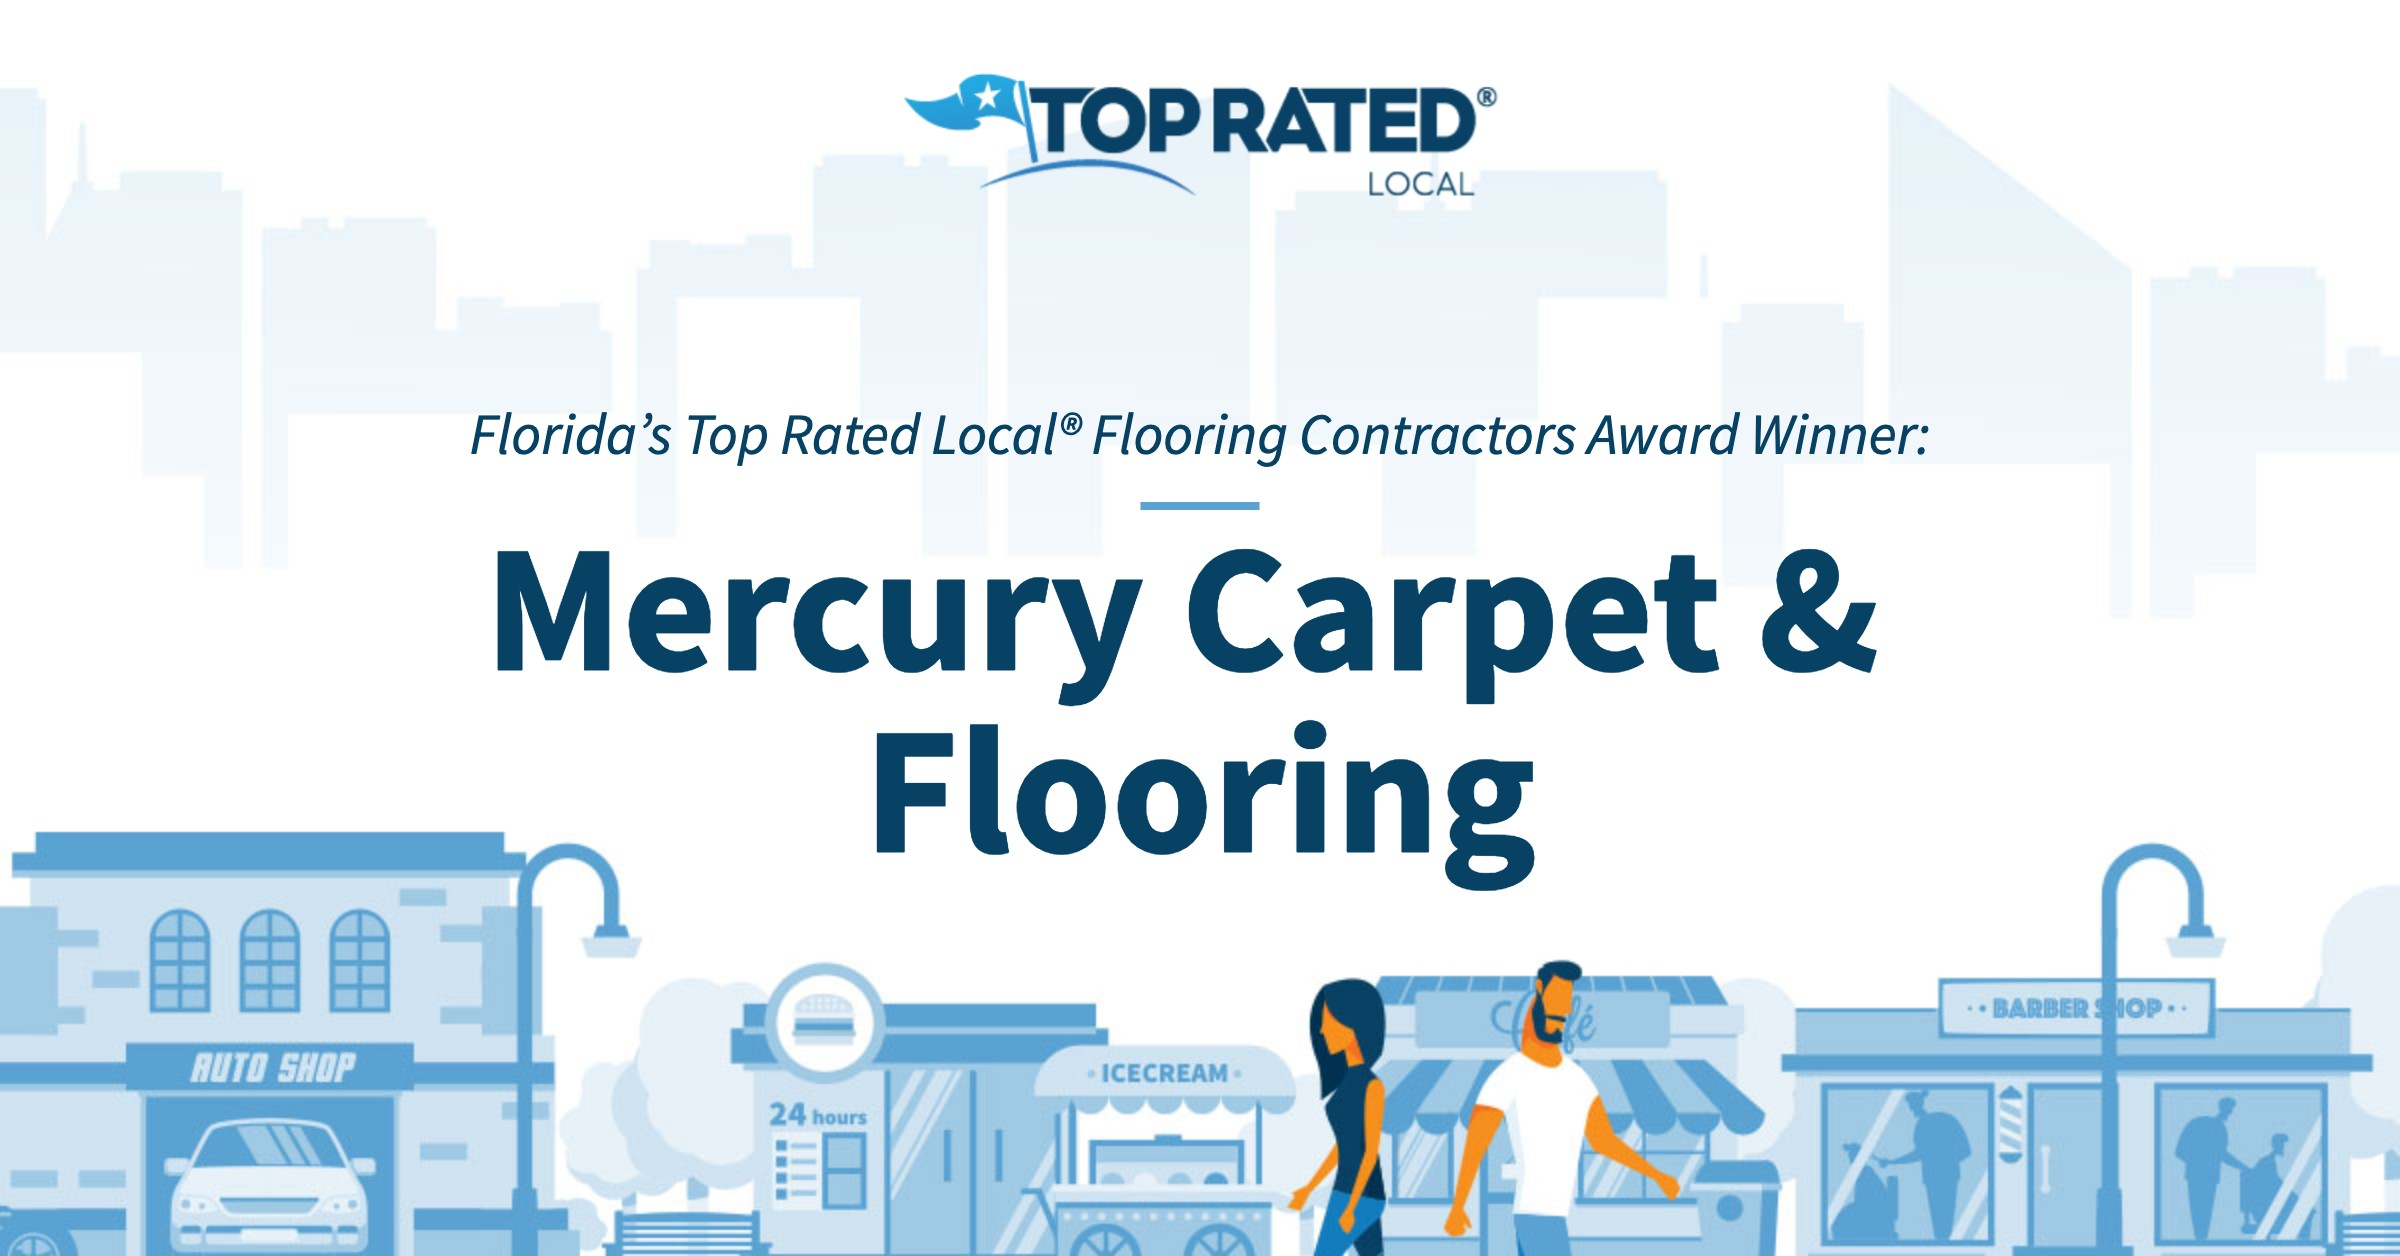 Florida's Top Rated Local® Flooring Contractors Award Winner: Mercury Carpet & Flooring